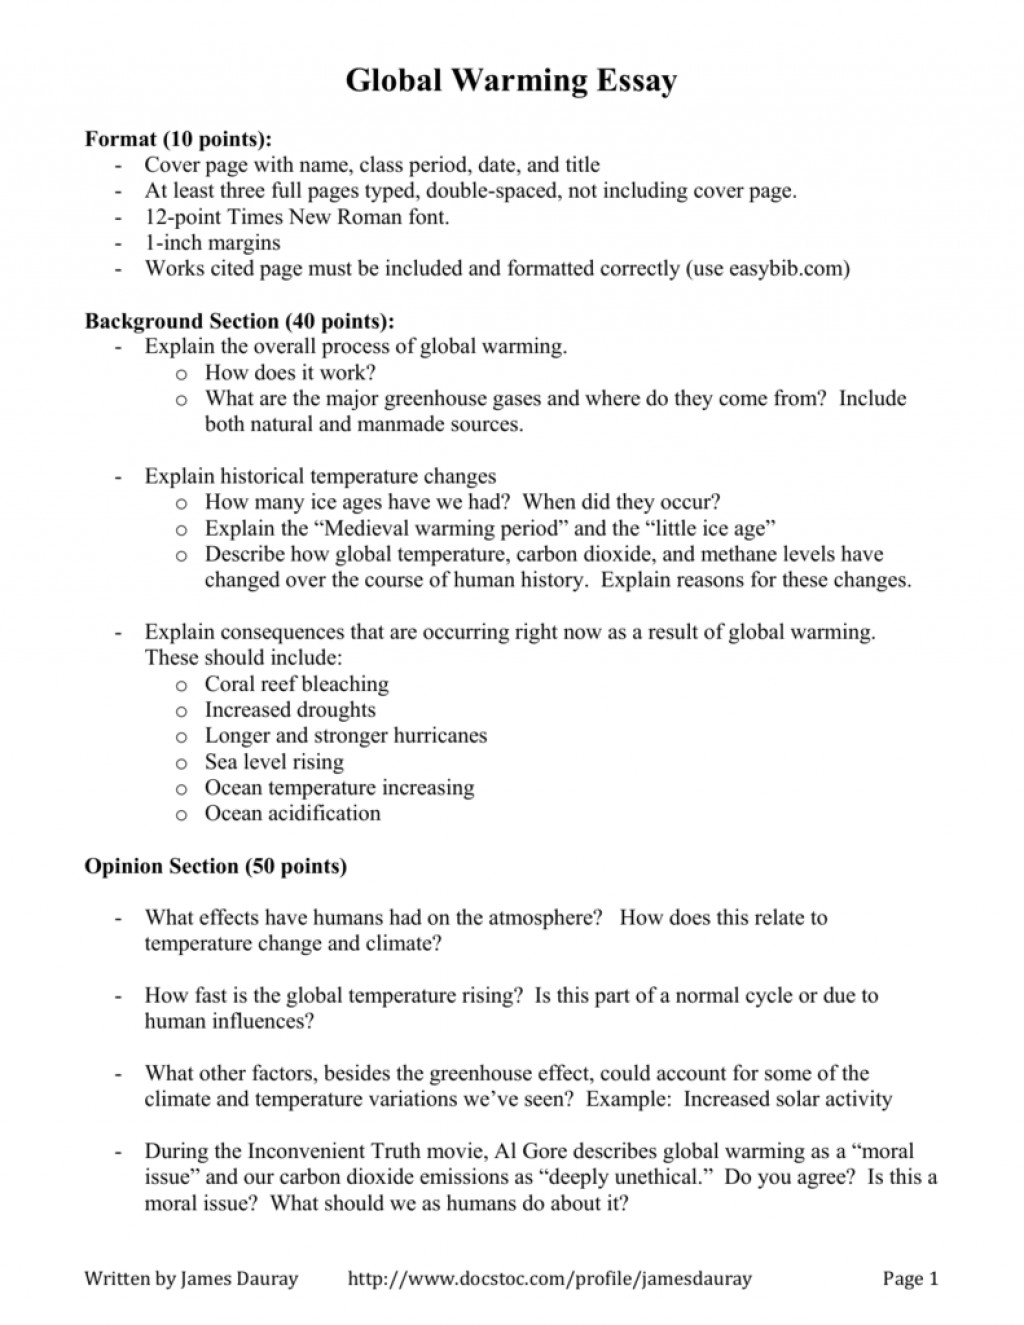 001 Global Warming Essay Example 007014108 1 Unusual Hook Conclusion Outline Large